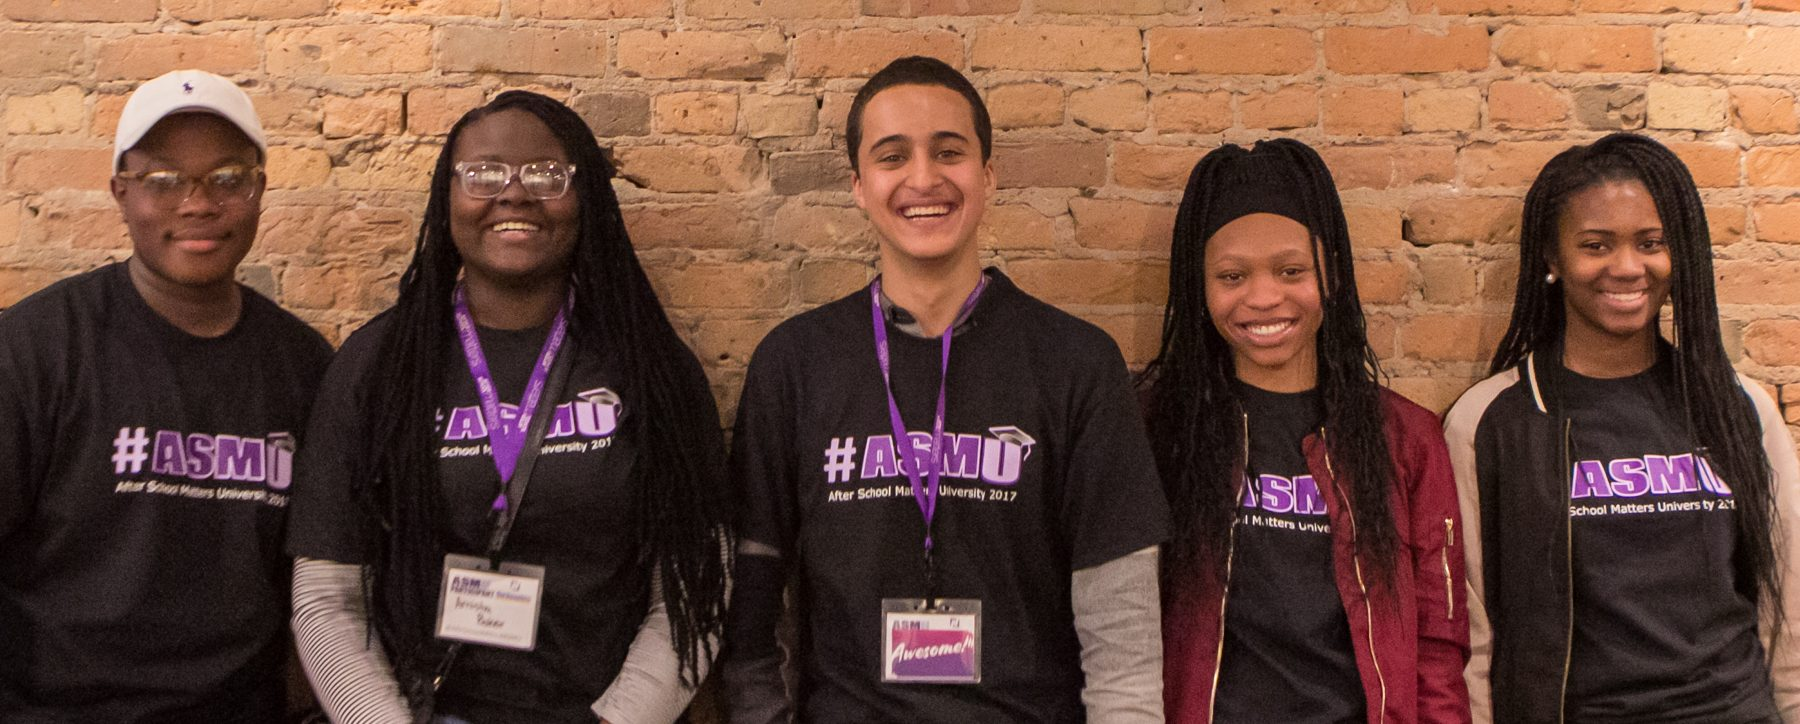 <h2>ASMU 2018</h2><div class='clear'></div><div class='gal_content'><p><p>Use your Spring Break to find your future!</p> <a href='http://www.afterschoolmatters.org/teens/asmu/'>It's what matters > </a></p></div>